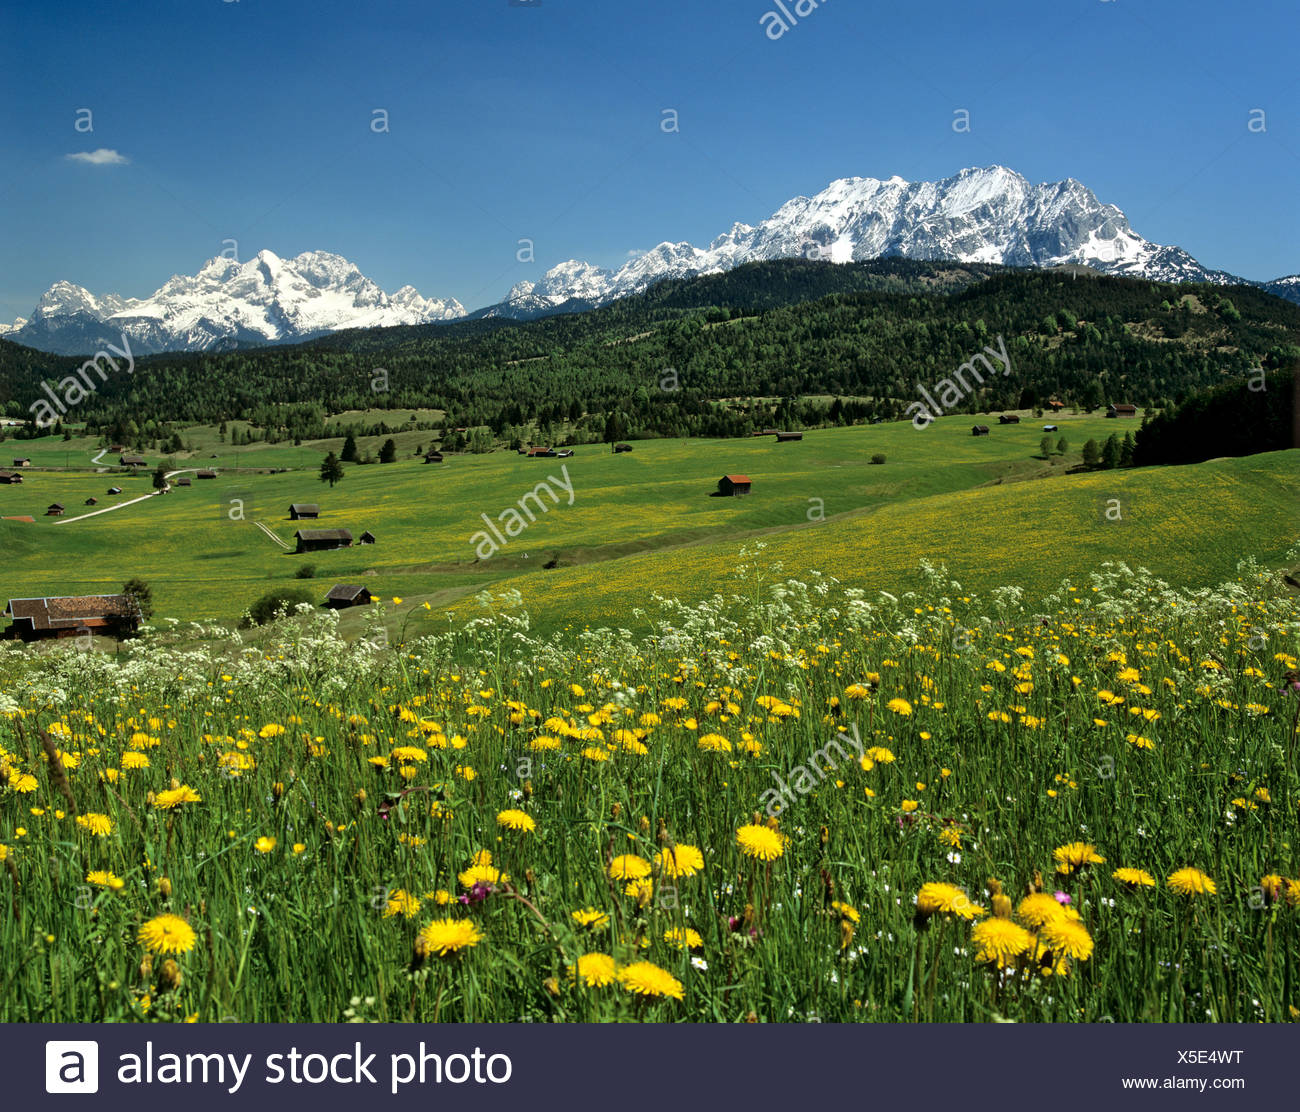 Tonihof Wildlife Park, Flower meadow in spring, Wetterstein Range, Mittenwald Forest, Upper Bavaria, Bavaria, Germany, Europe Stock Photo